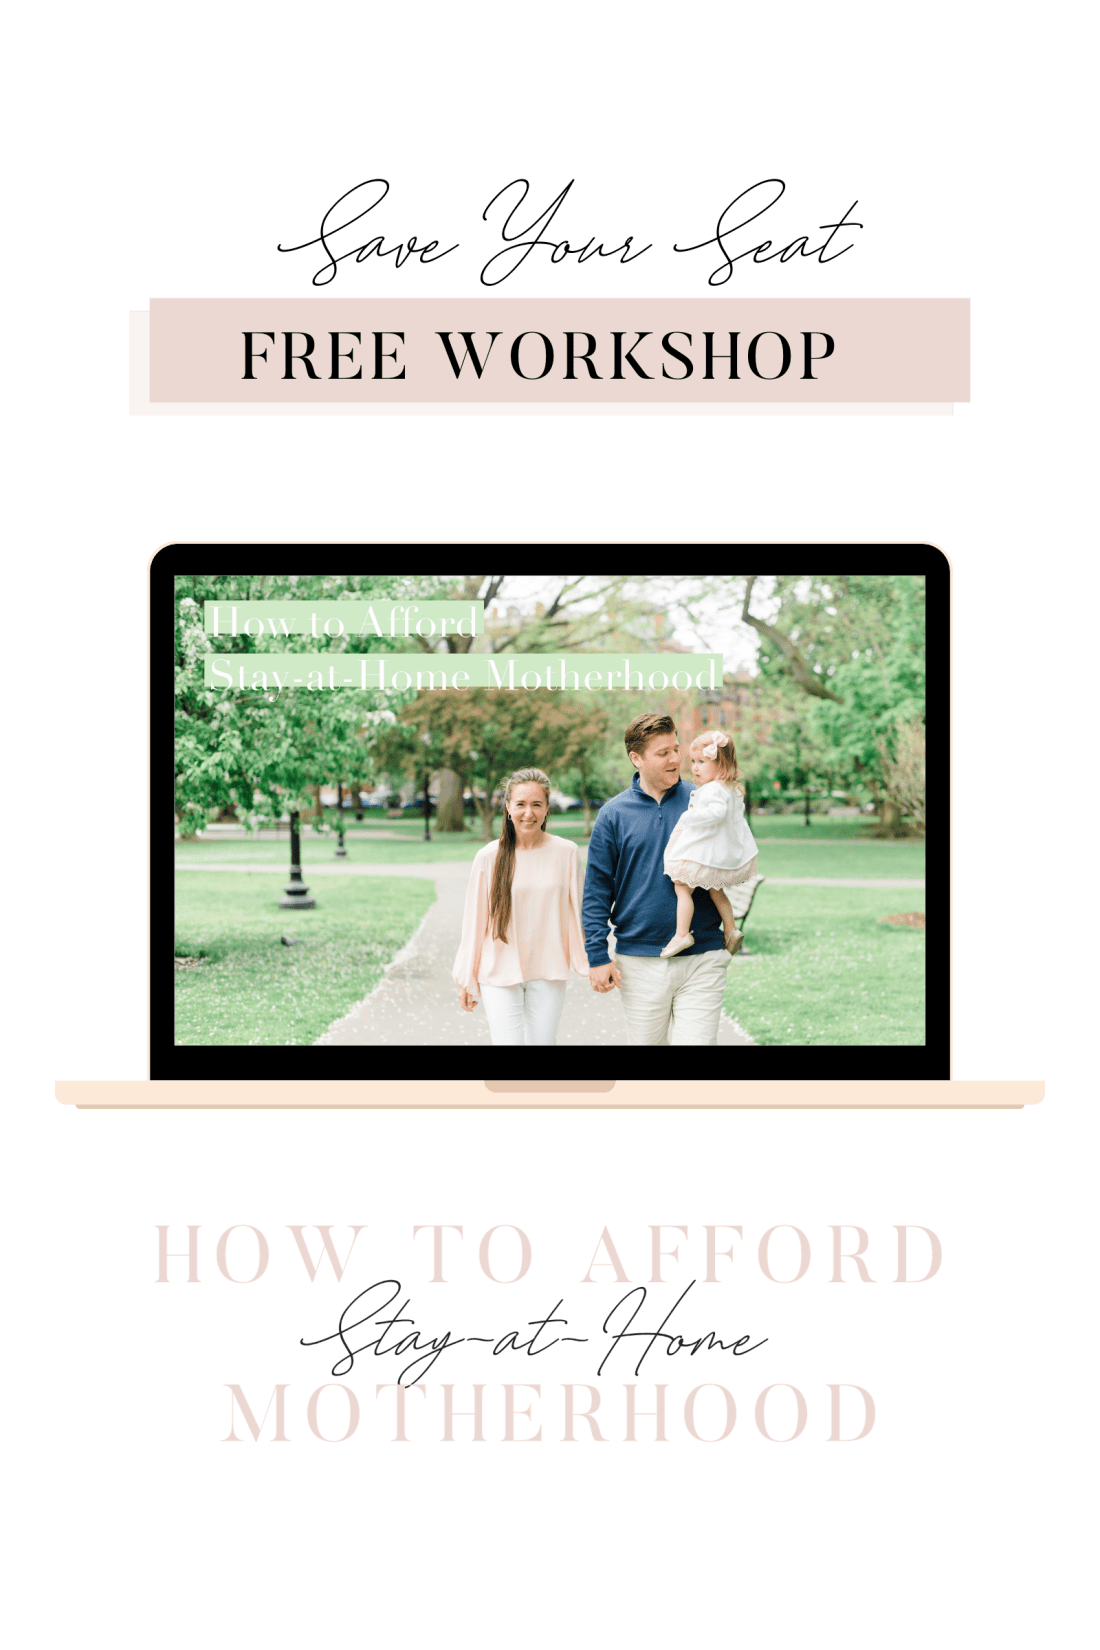 Join the FREE How to Afford Stay-at-Home Motherhood Workshop